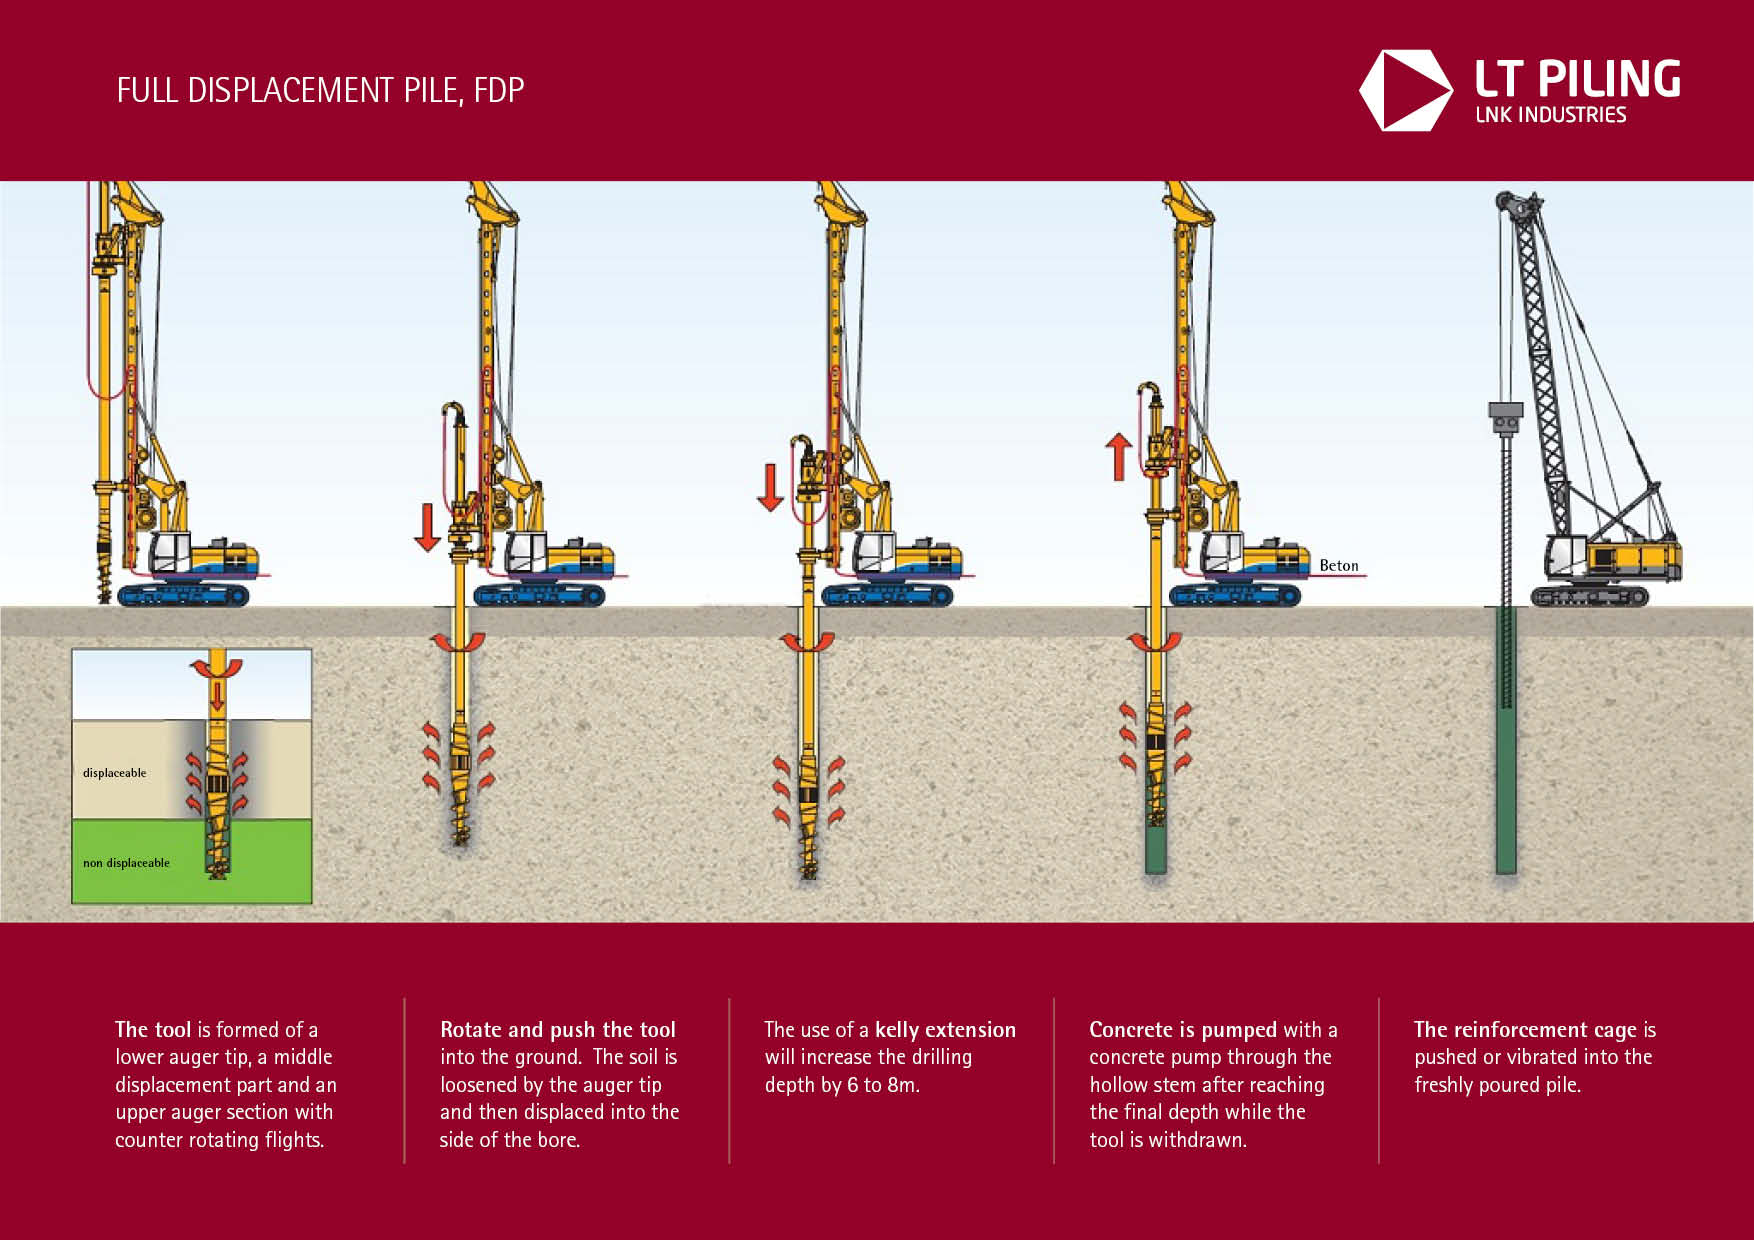 FDP (Full Displacement) technology